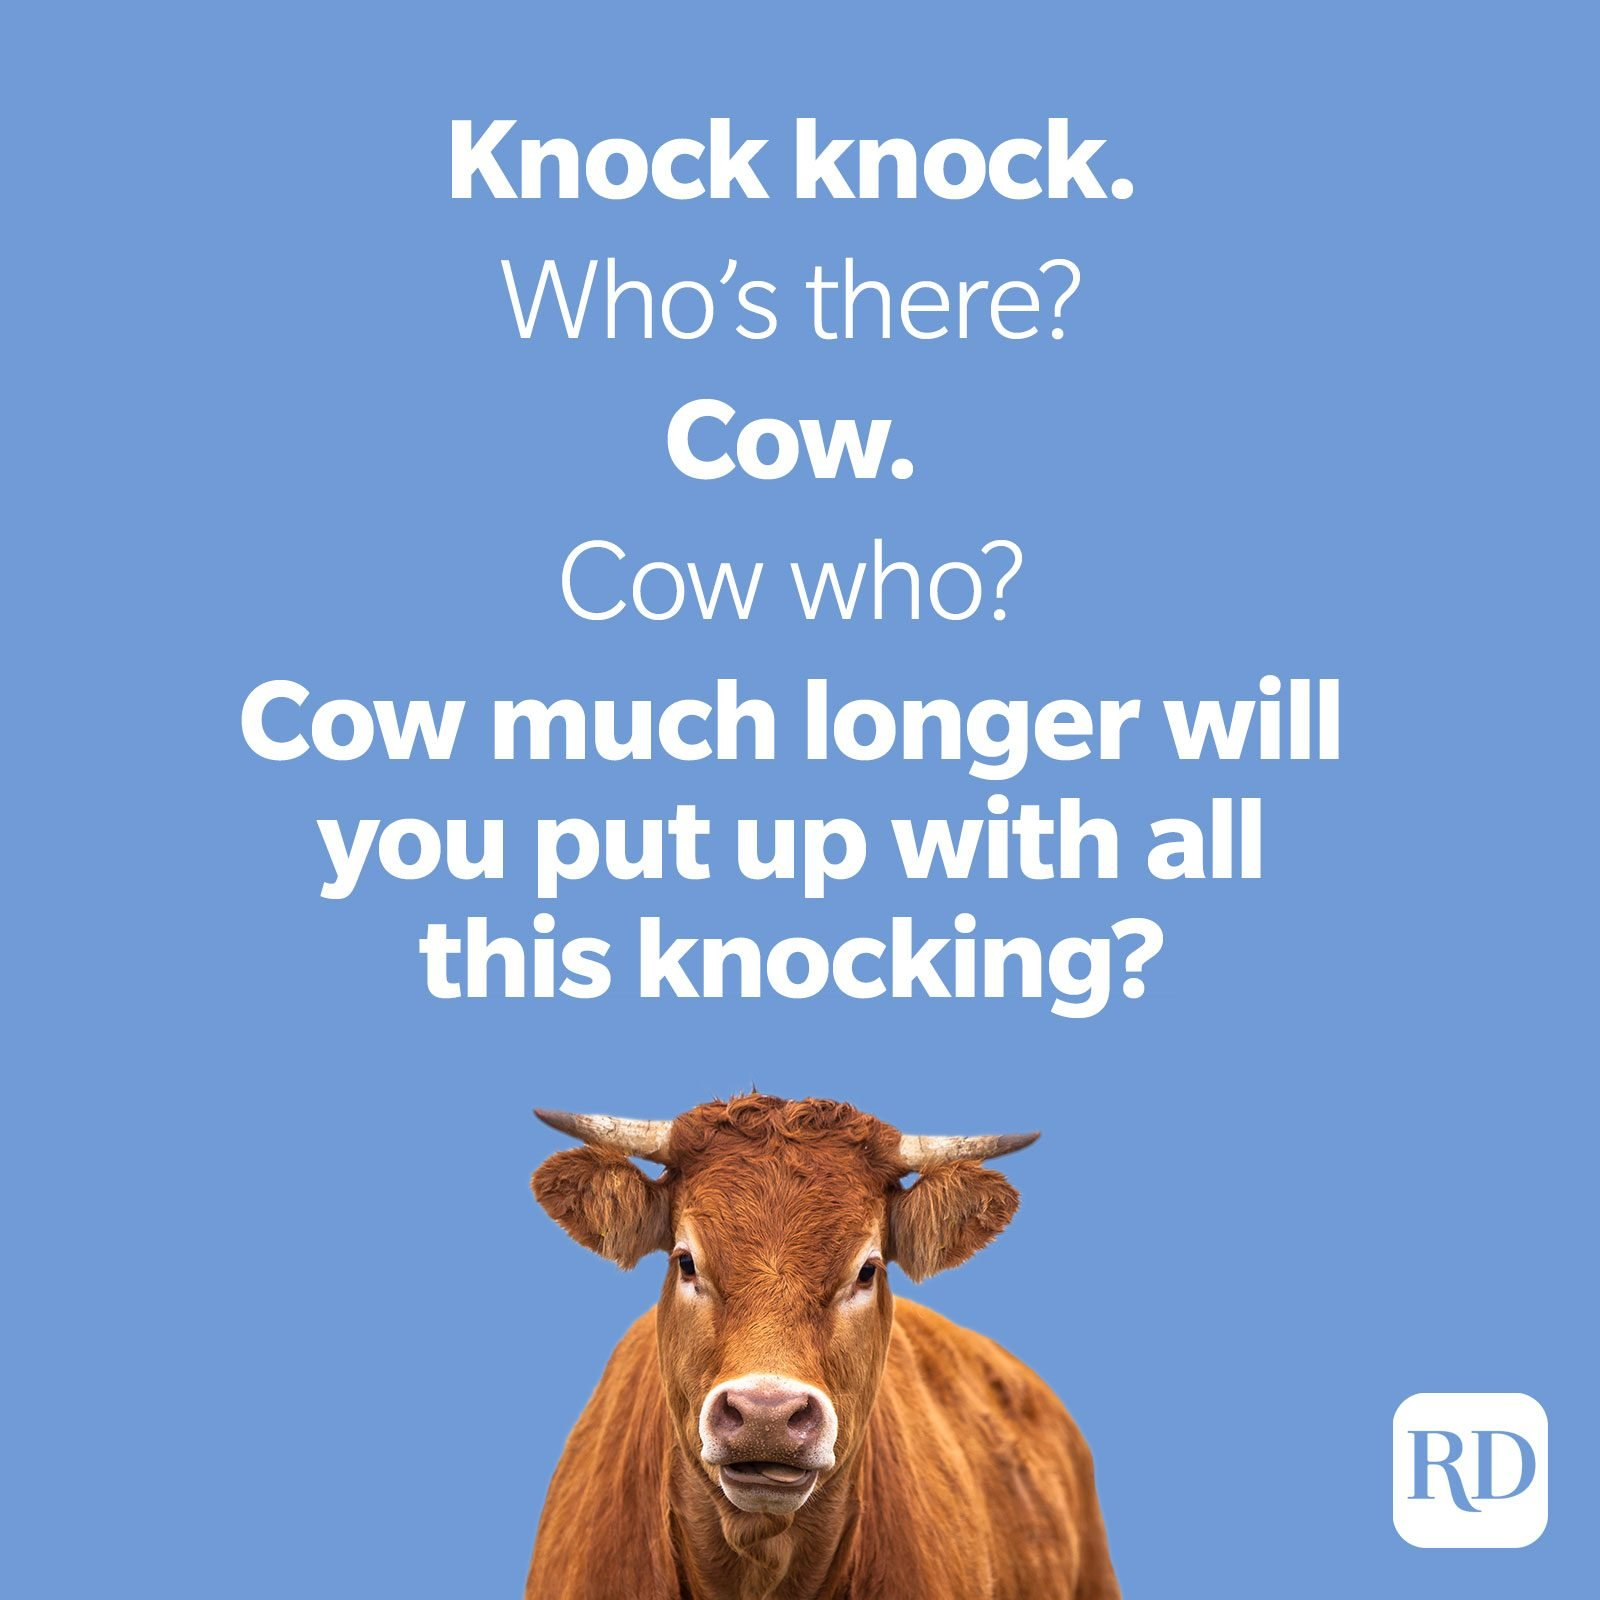 49. Knock knock. Who's there? Cow. Cow who? Cow much longer will you put up with all this knocking?